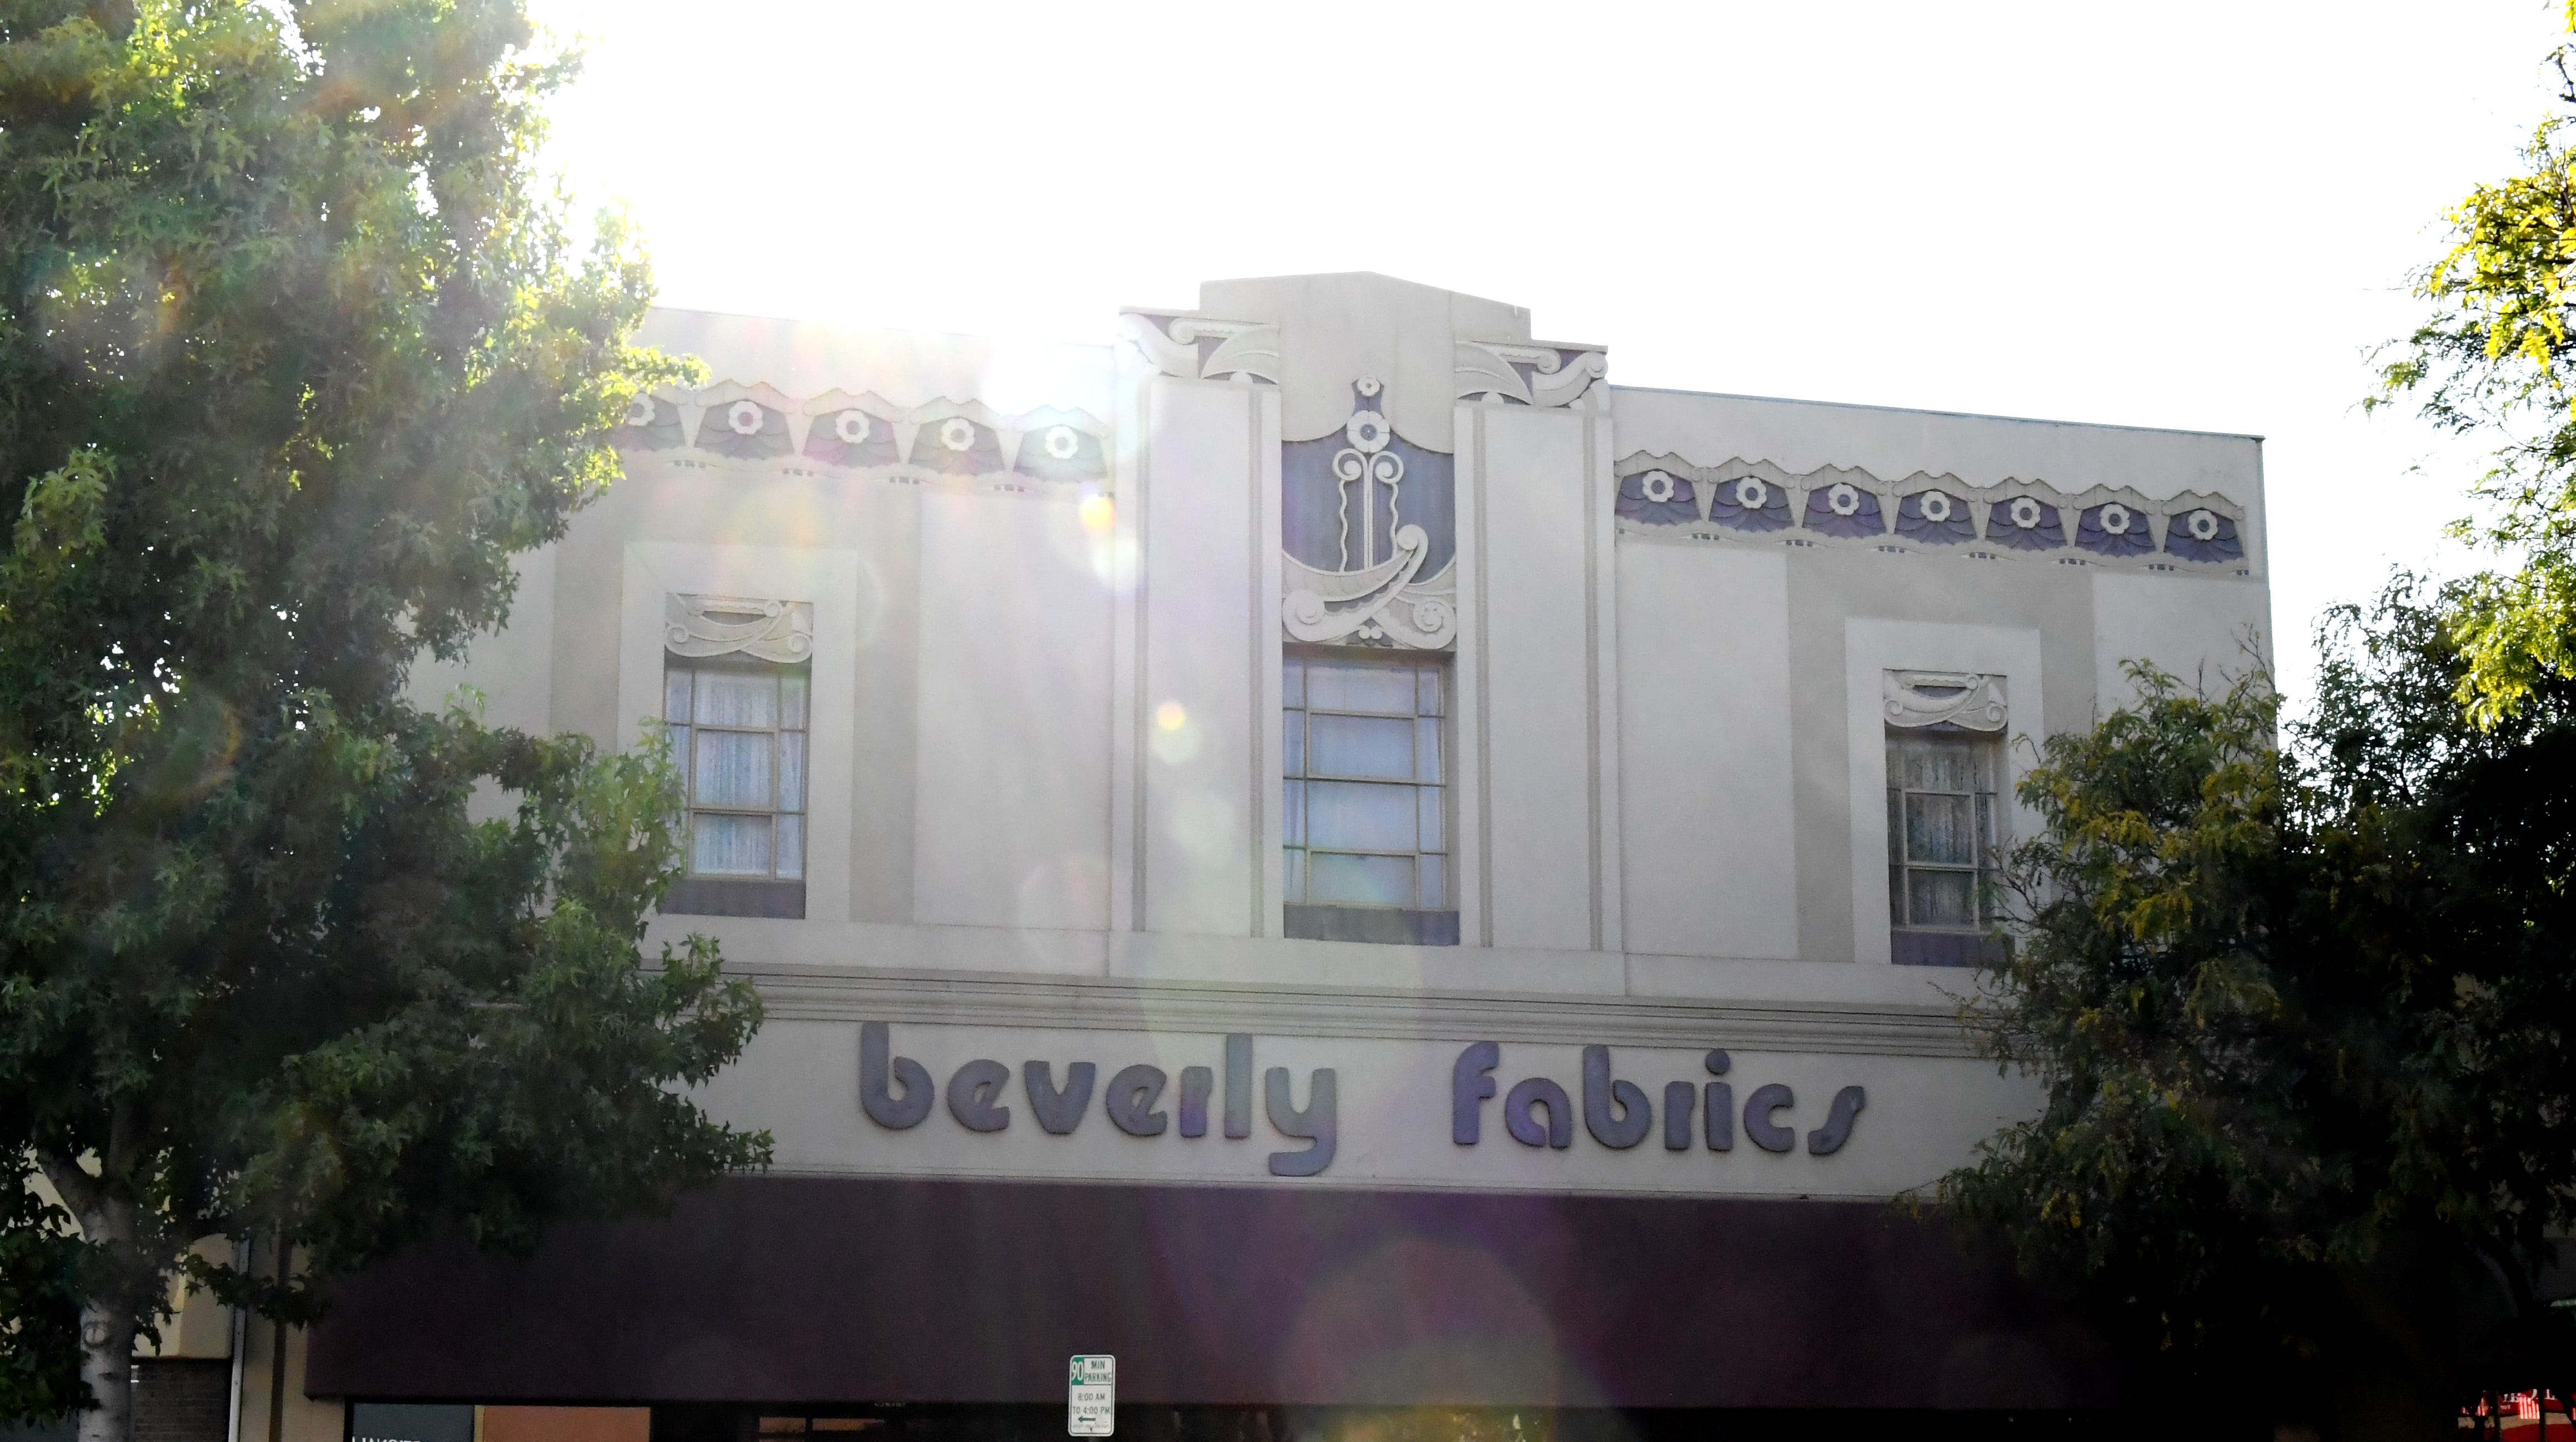 The former building of Beverly Fabrics in Oldtown Salinas.